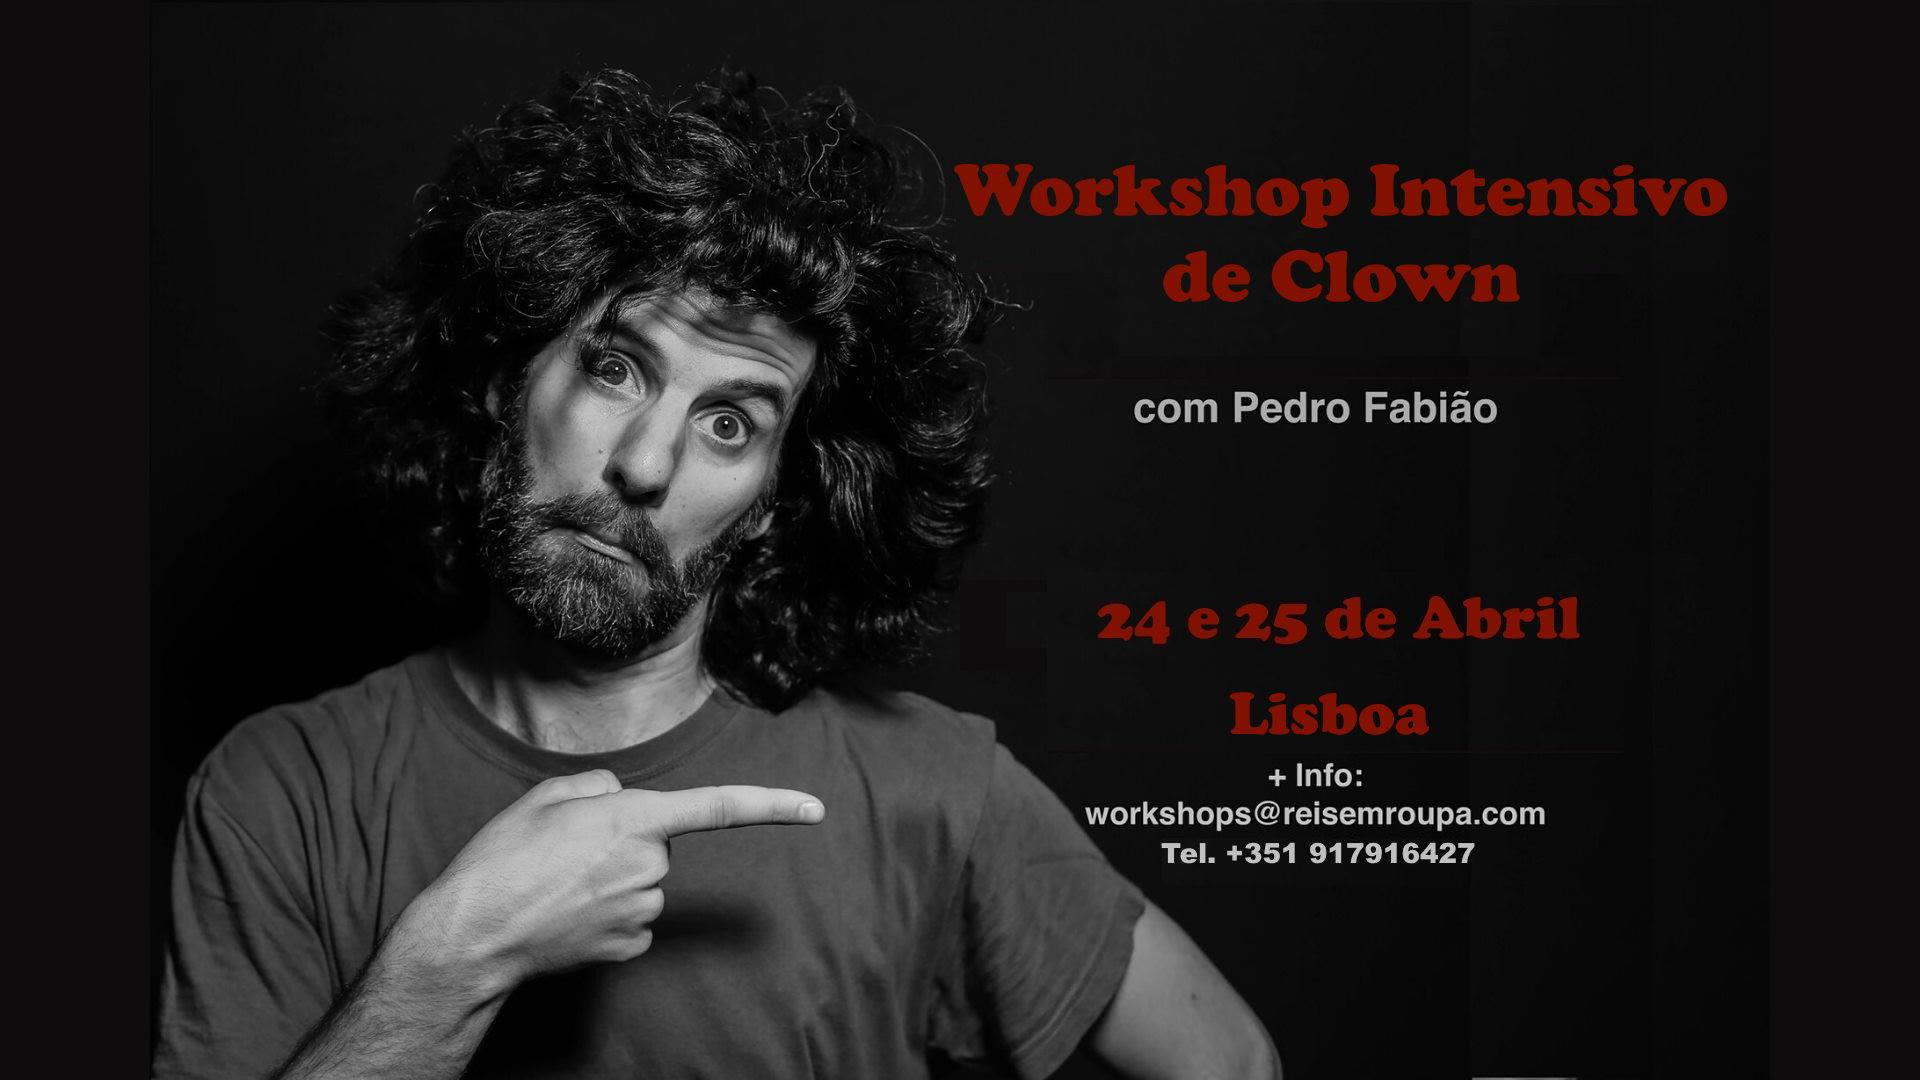 Workshop Intensivo de Clown